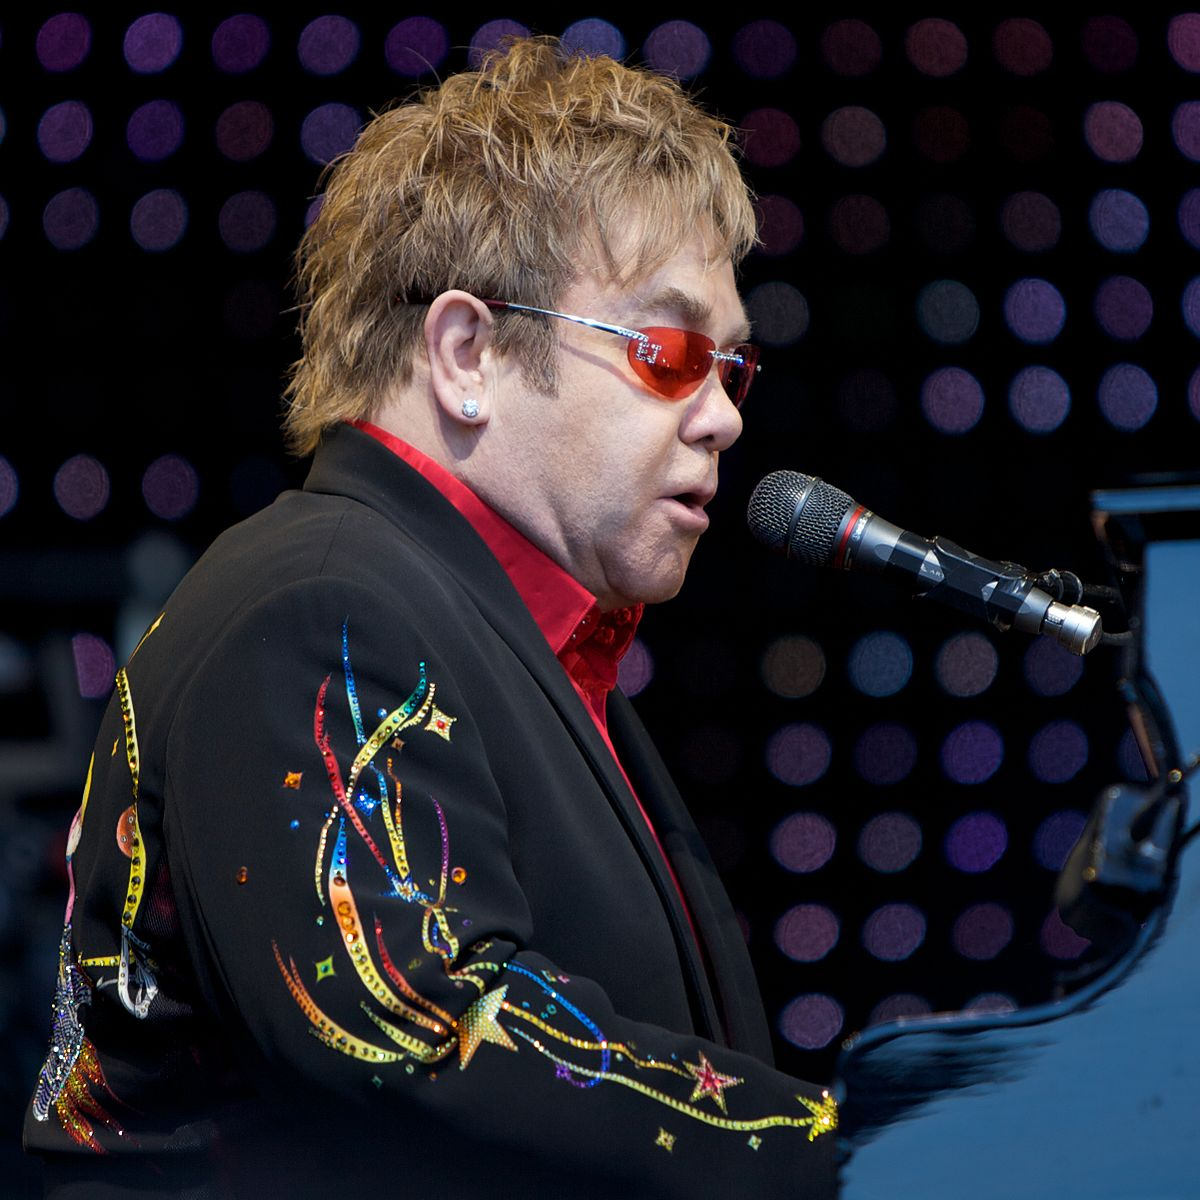 1 30 23 Things You Didn't Know About Elton John